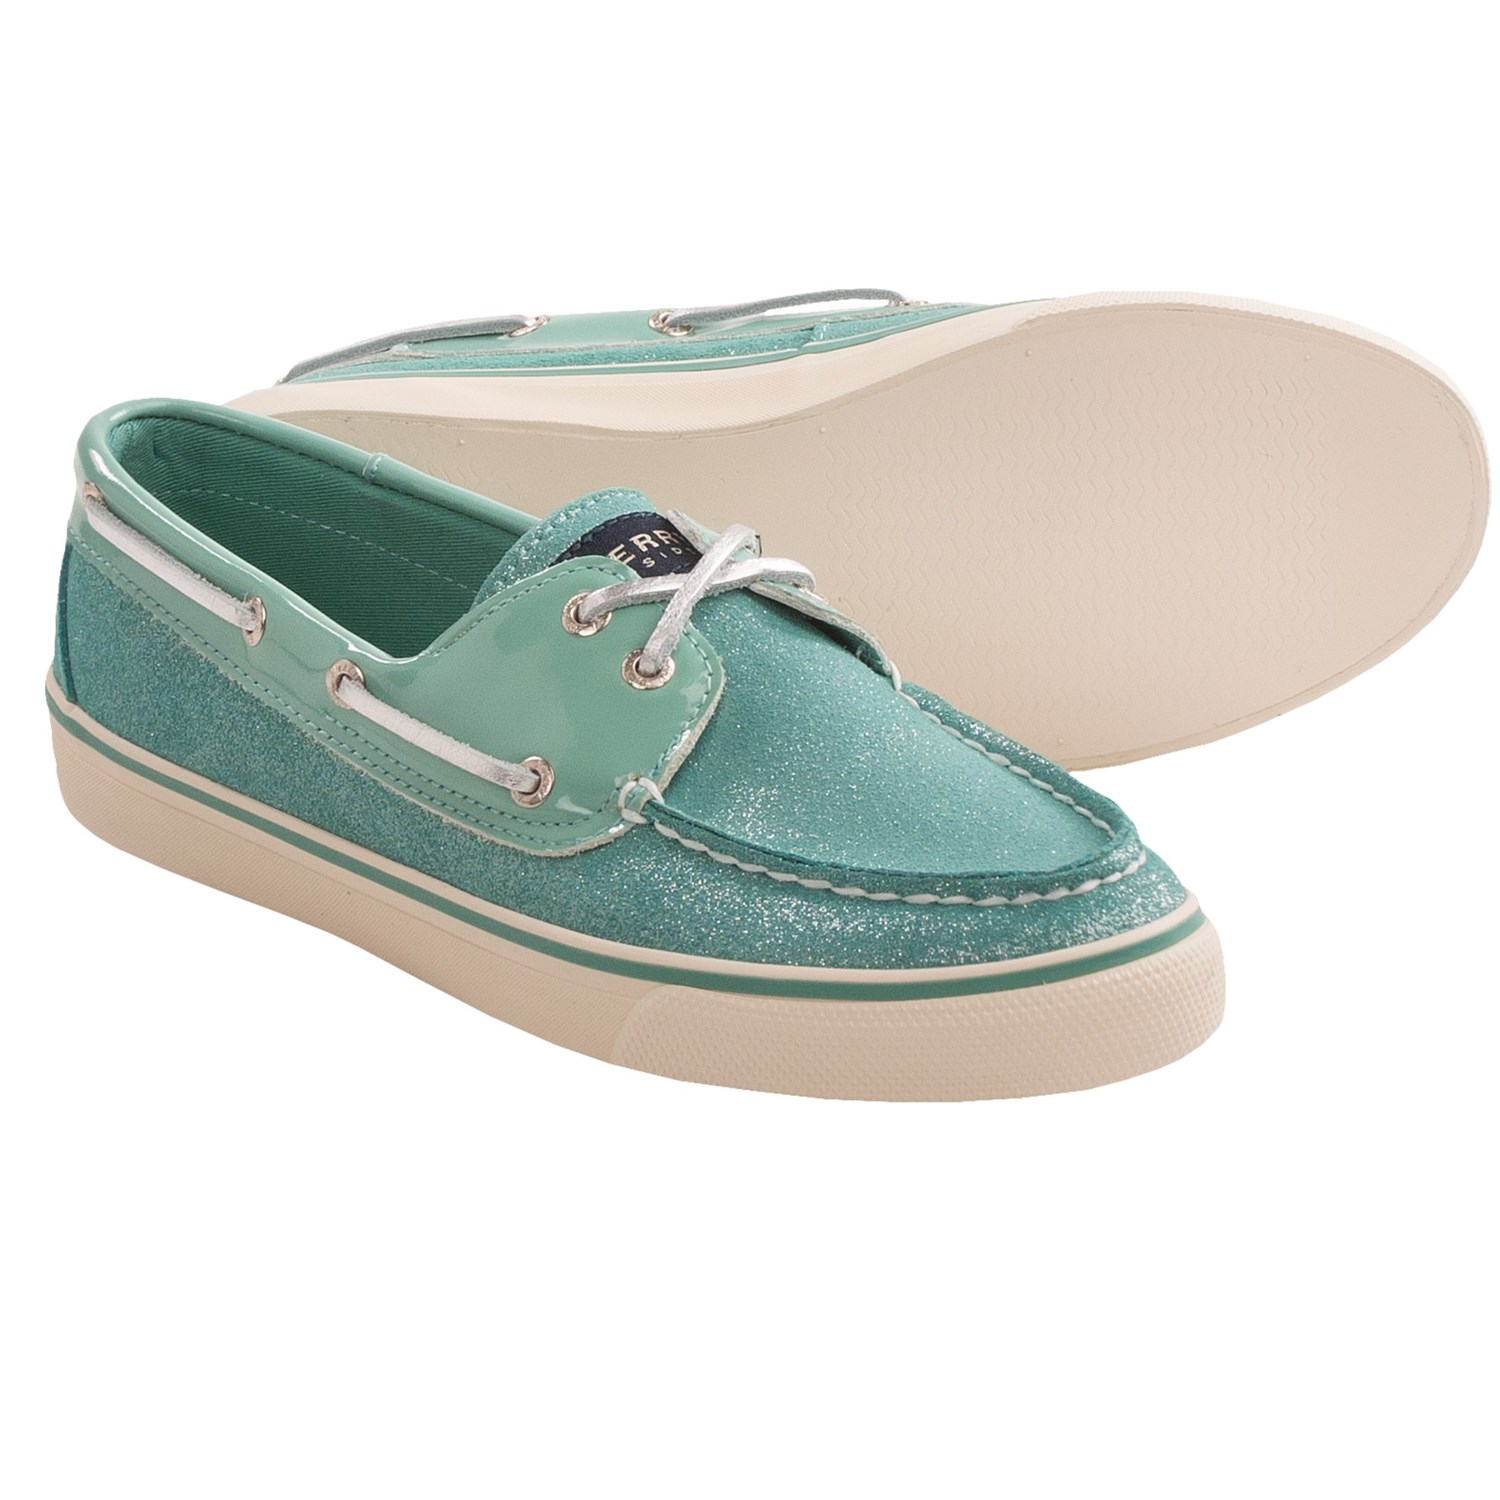 Sperry Top-Sider Bahama Boat Shoes (For Women) in Turquoise Sparkle